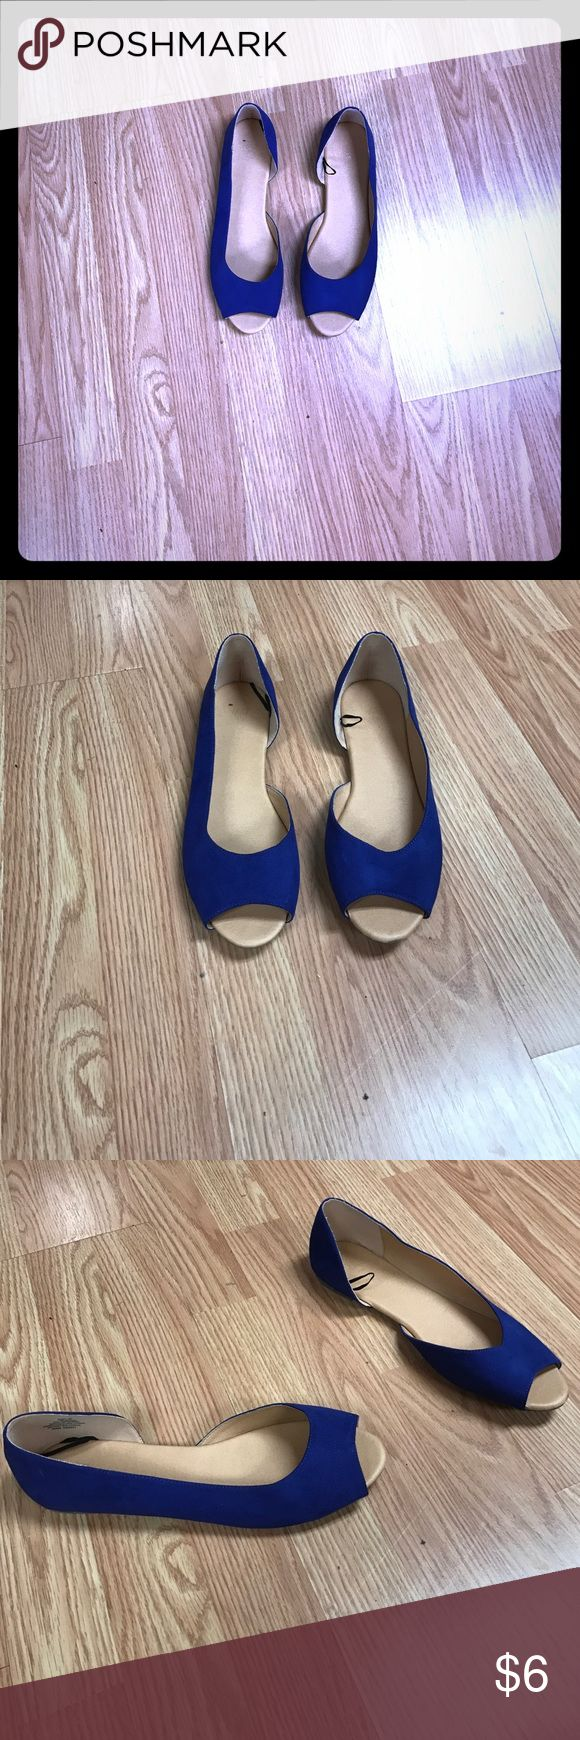 Blue peep toe flats Blue peep toe flats ! Worn one time ! H&M Shoes